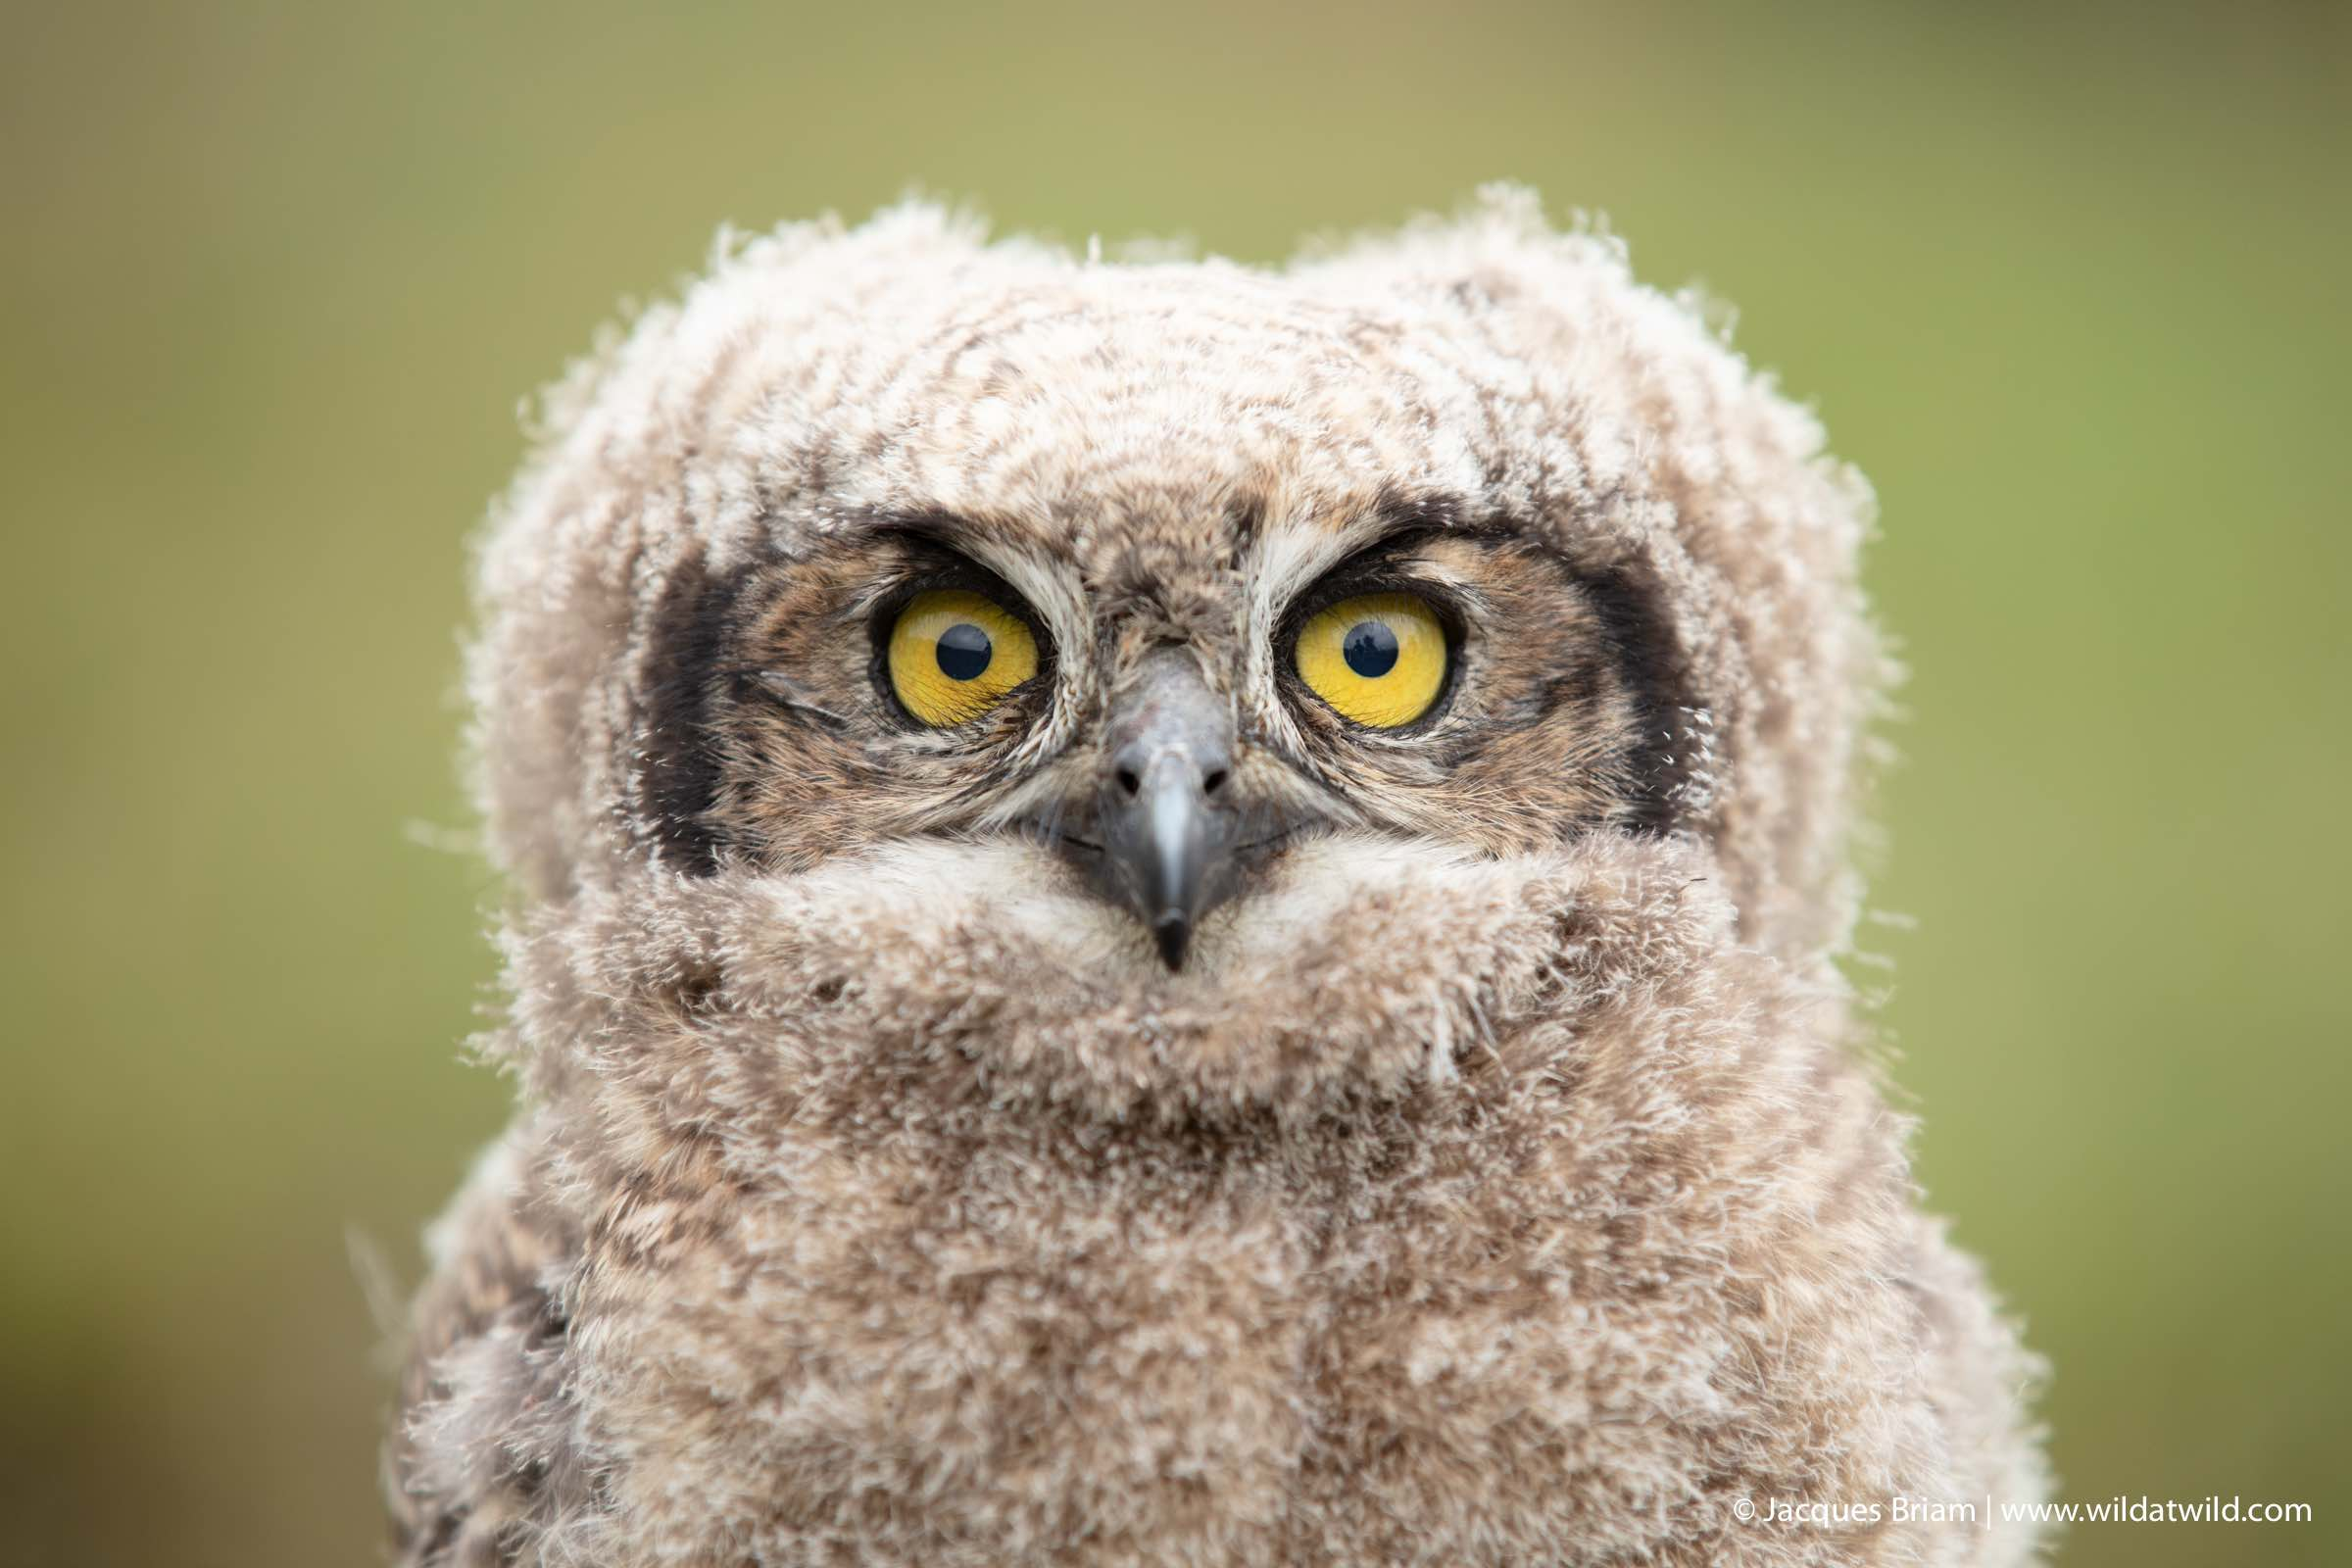 A close-up portrait of the Spotted Eagle-Owl chick that was rescued.